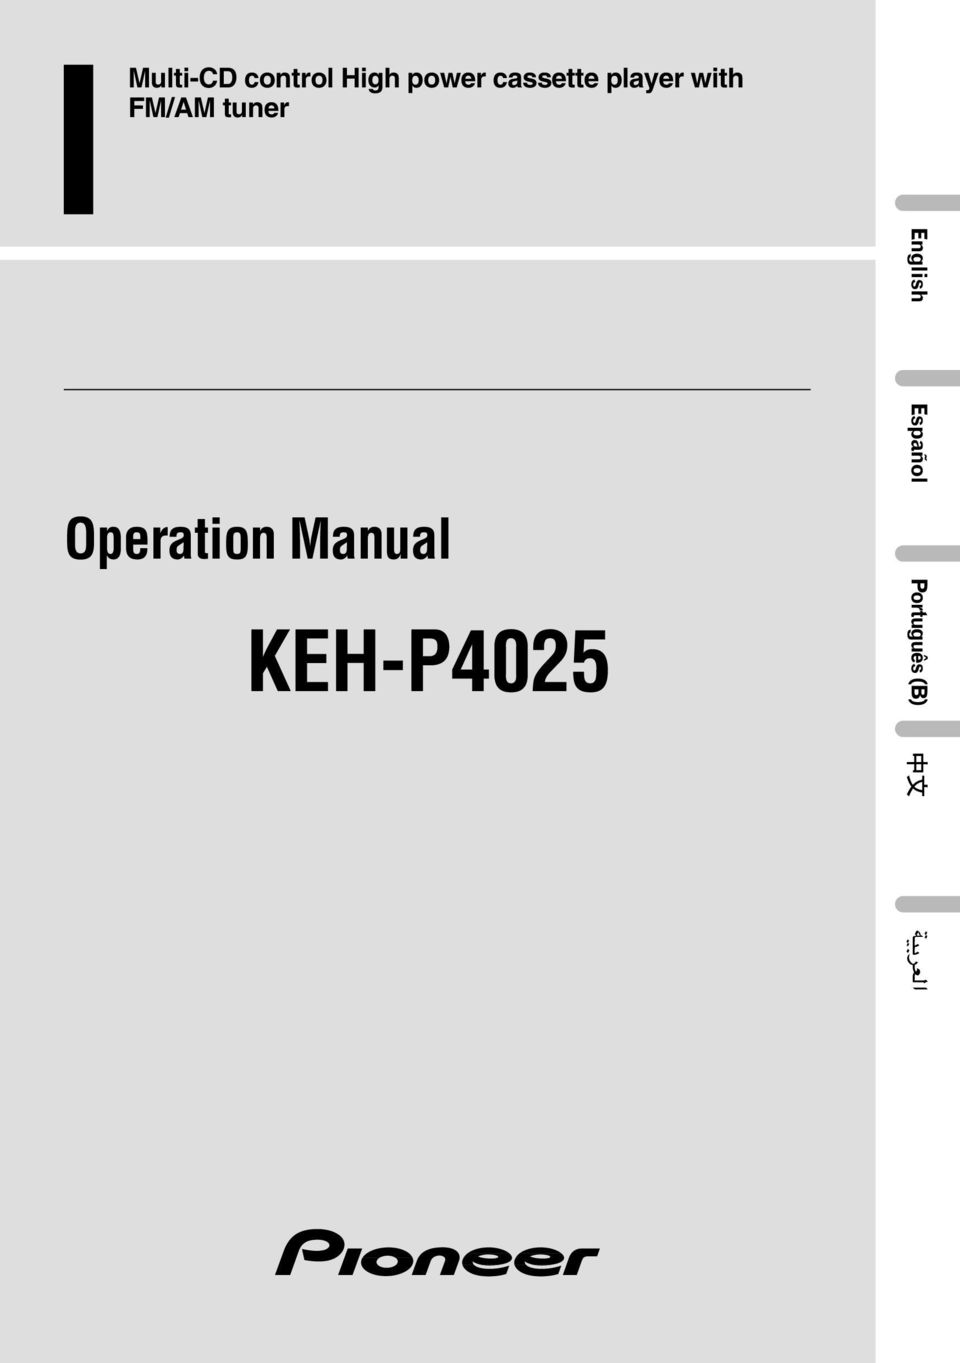 tuner Operation Manual